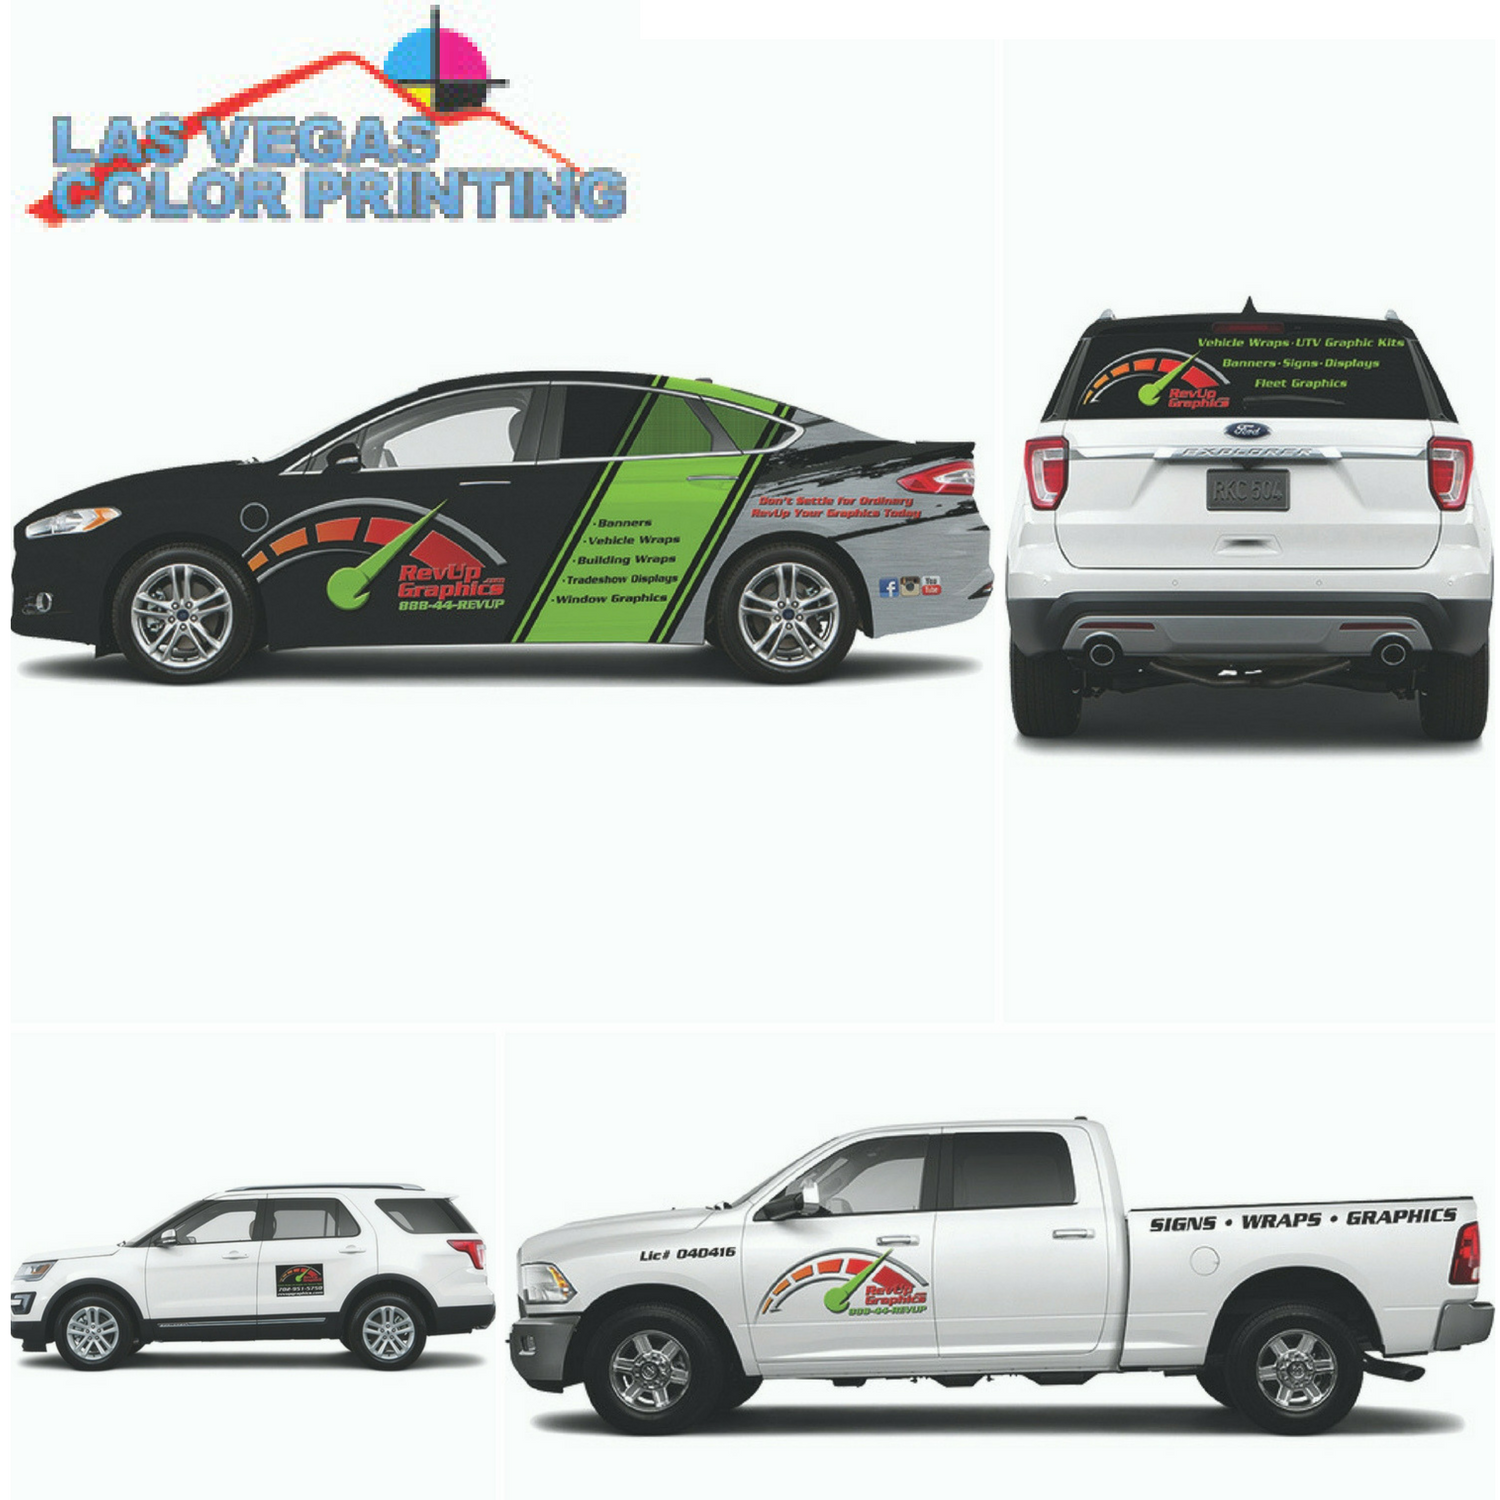 Las Vegas Color Printing Is Offer Vehicle Graphics For Showcasing Your Brand On Vehicles Select A Product To Select A Pr Car Graphics Vehicles Printed Magnets [ 1500 x 1500 Pixel ]